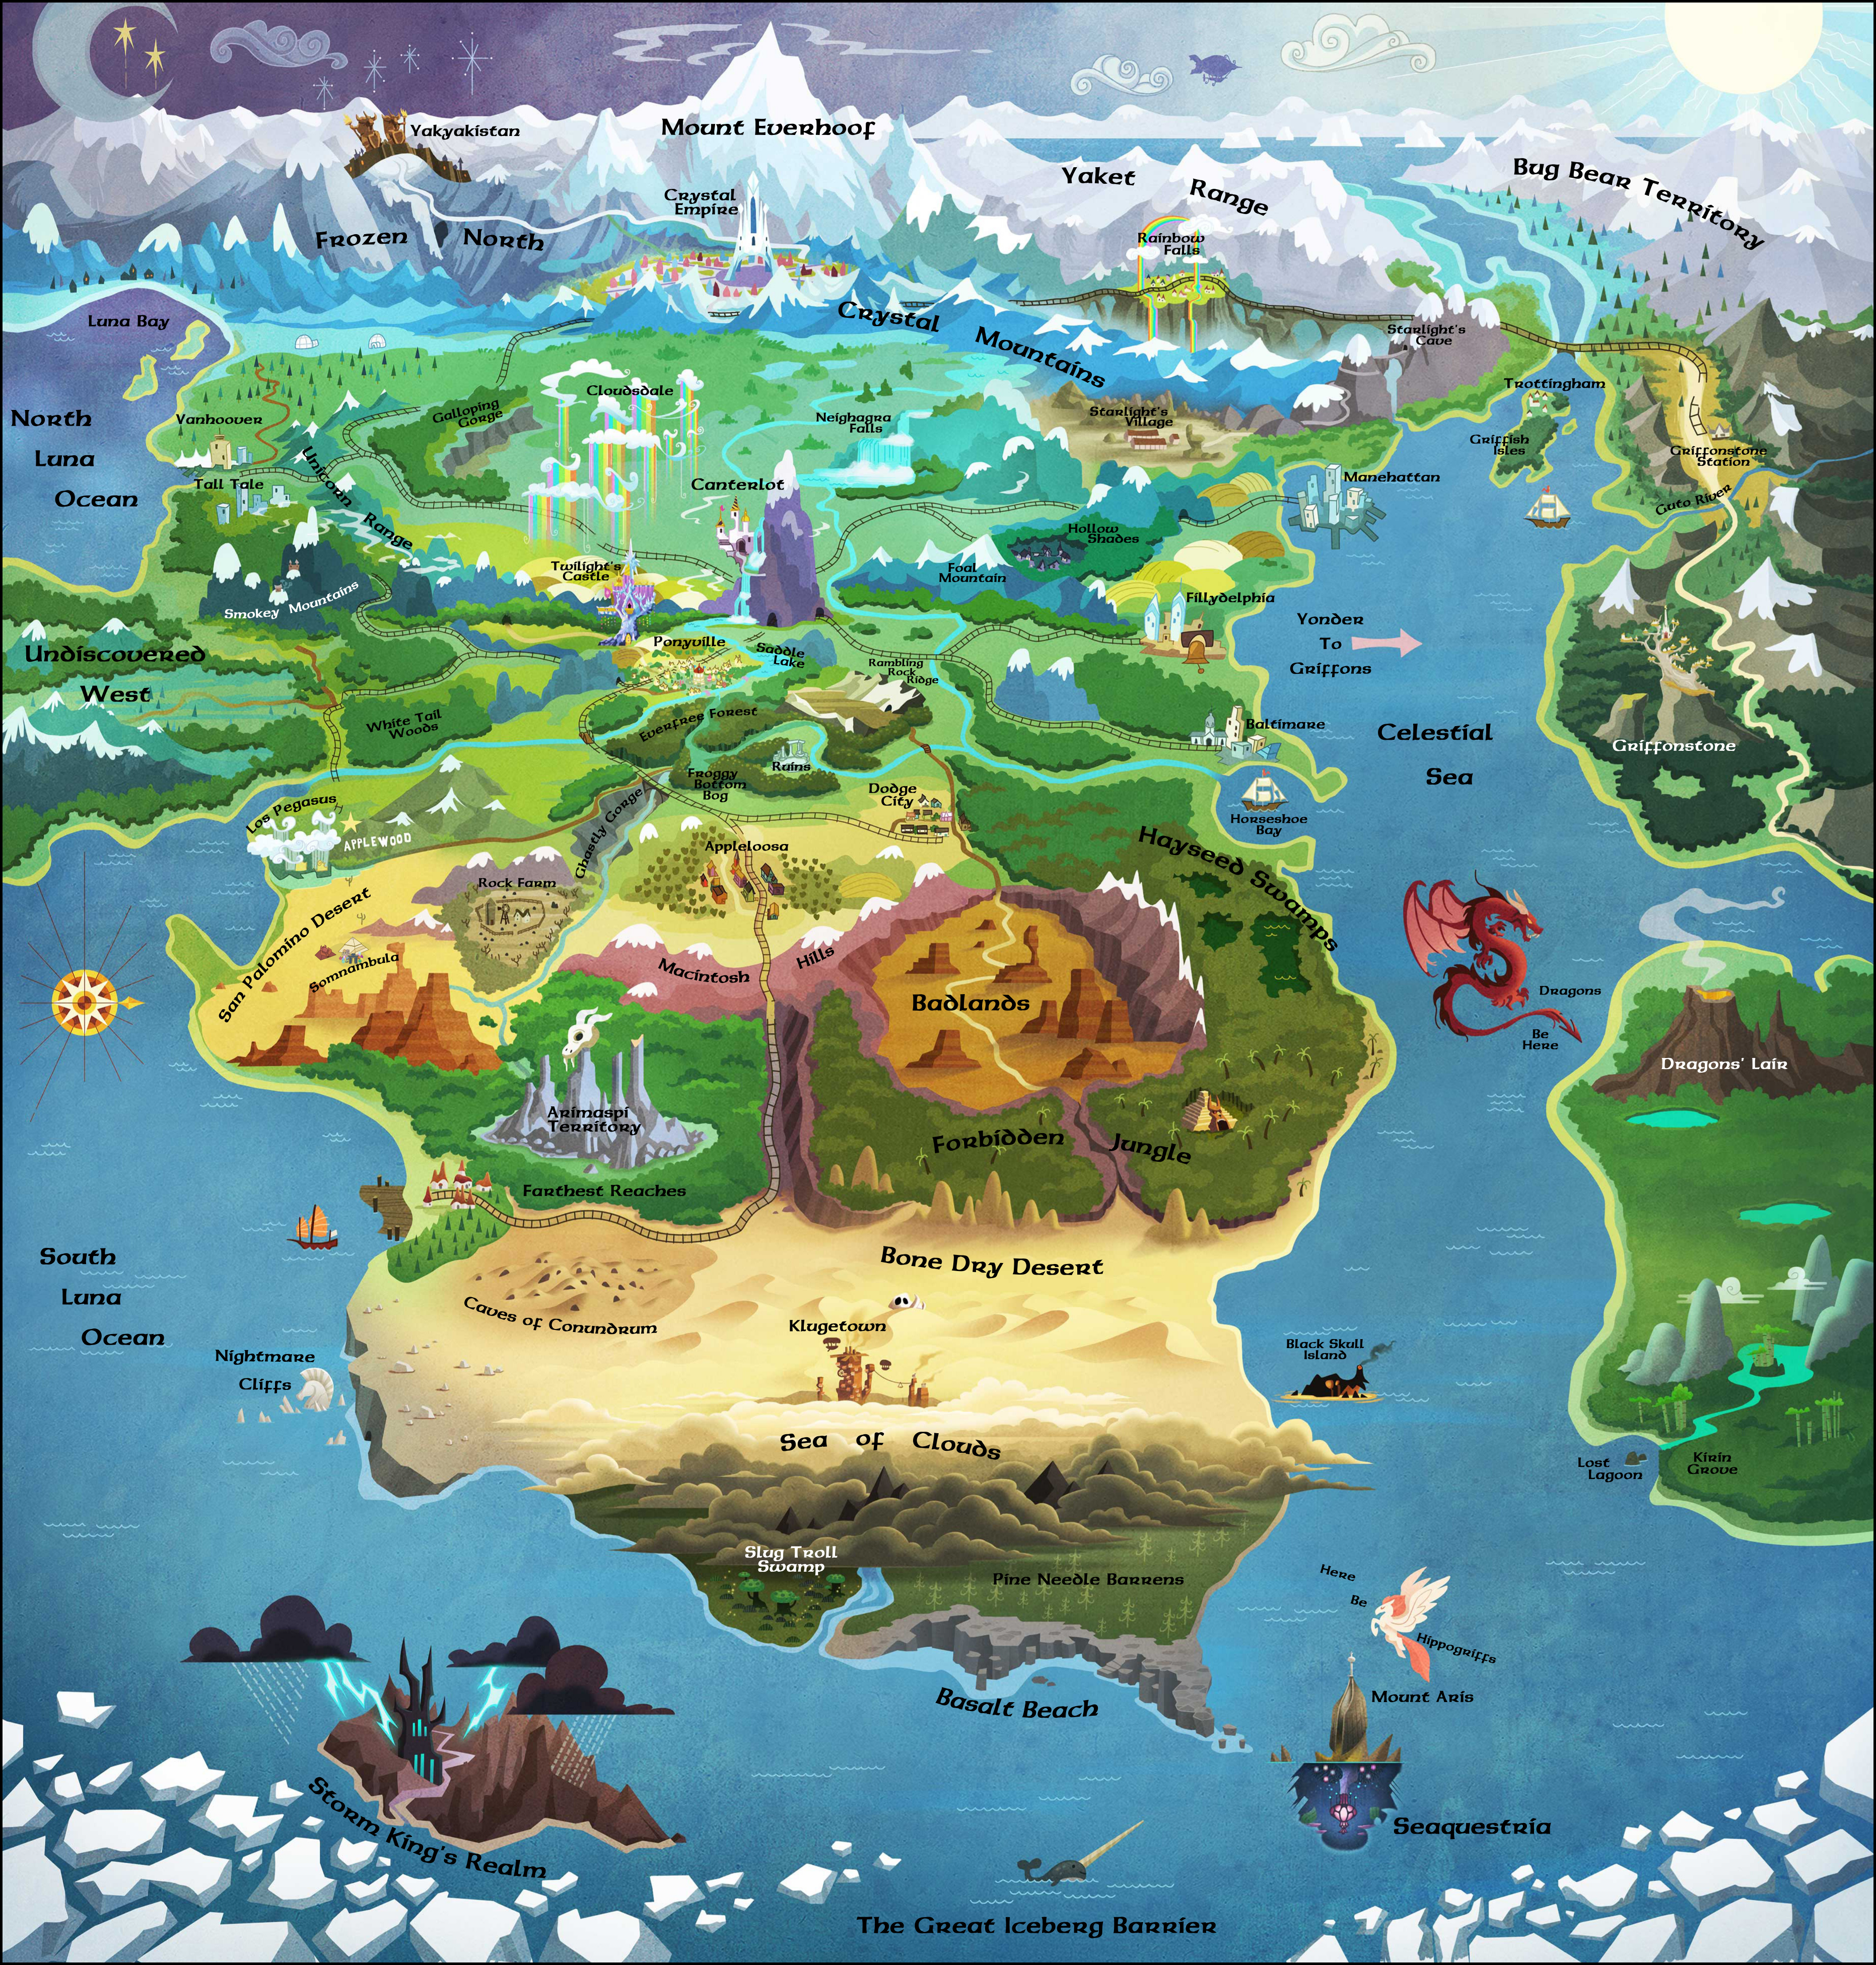 Updated World Map And Timeline Of Events Spoilers Fimfiction - Updated world map